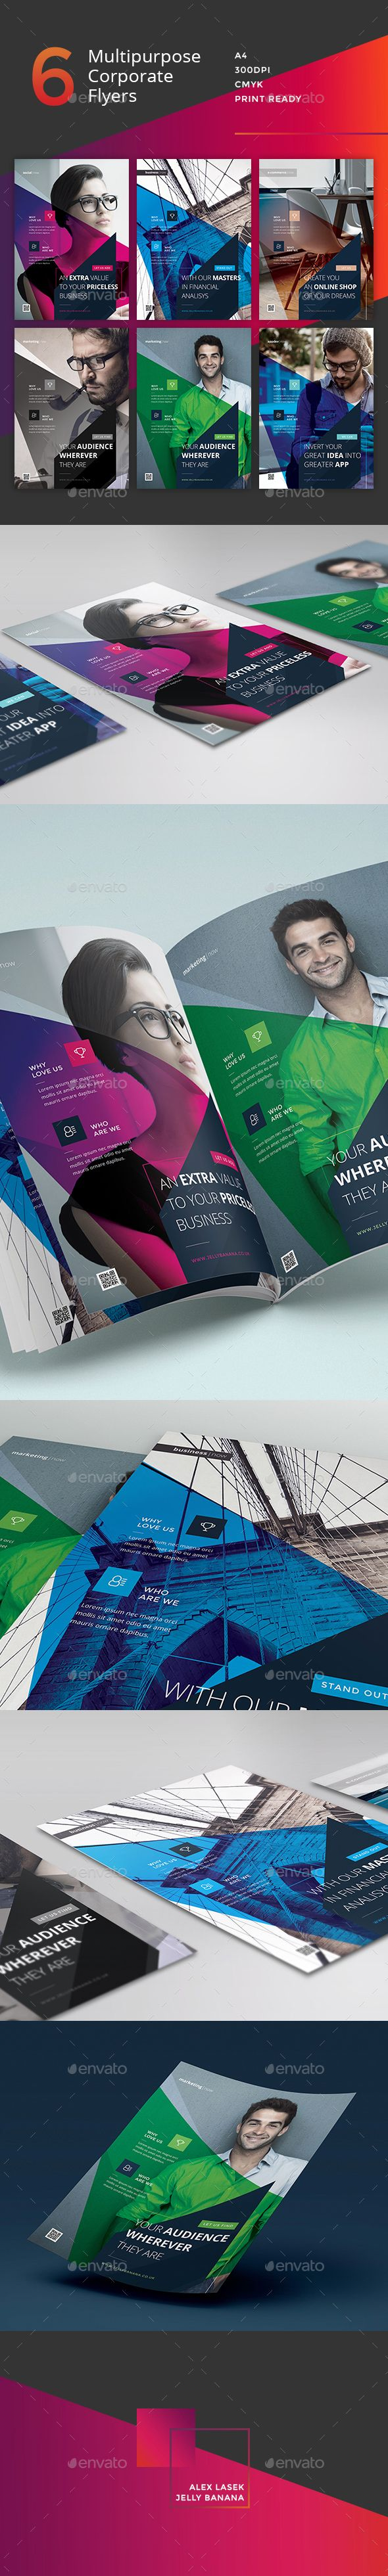 Corporate Flyer - 6 Multipurpose Business Template PSD #design Download: http://graphicriver.net/item/corporate-flyer-6-multipurpose-business-template/13721438?ref=ksioks